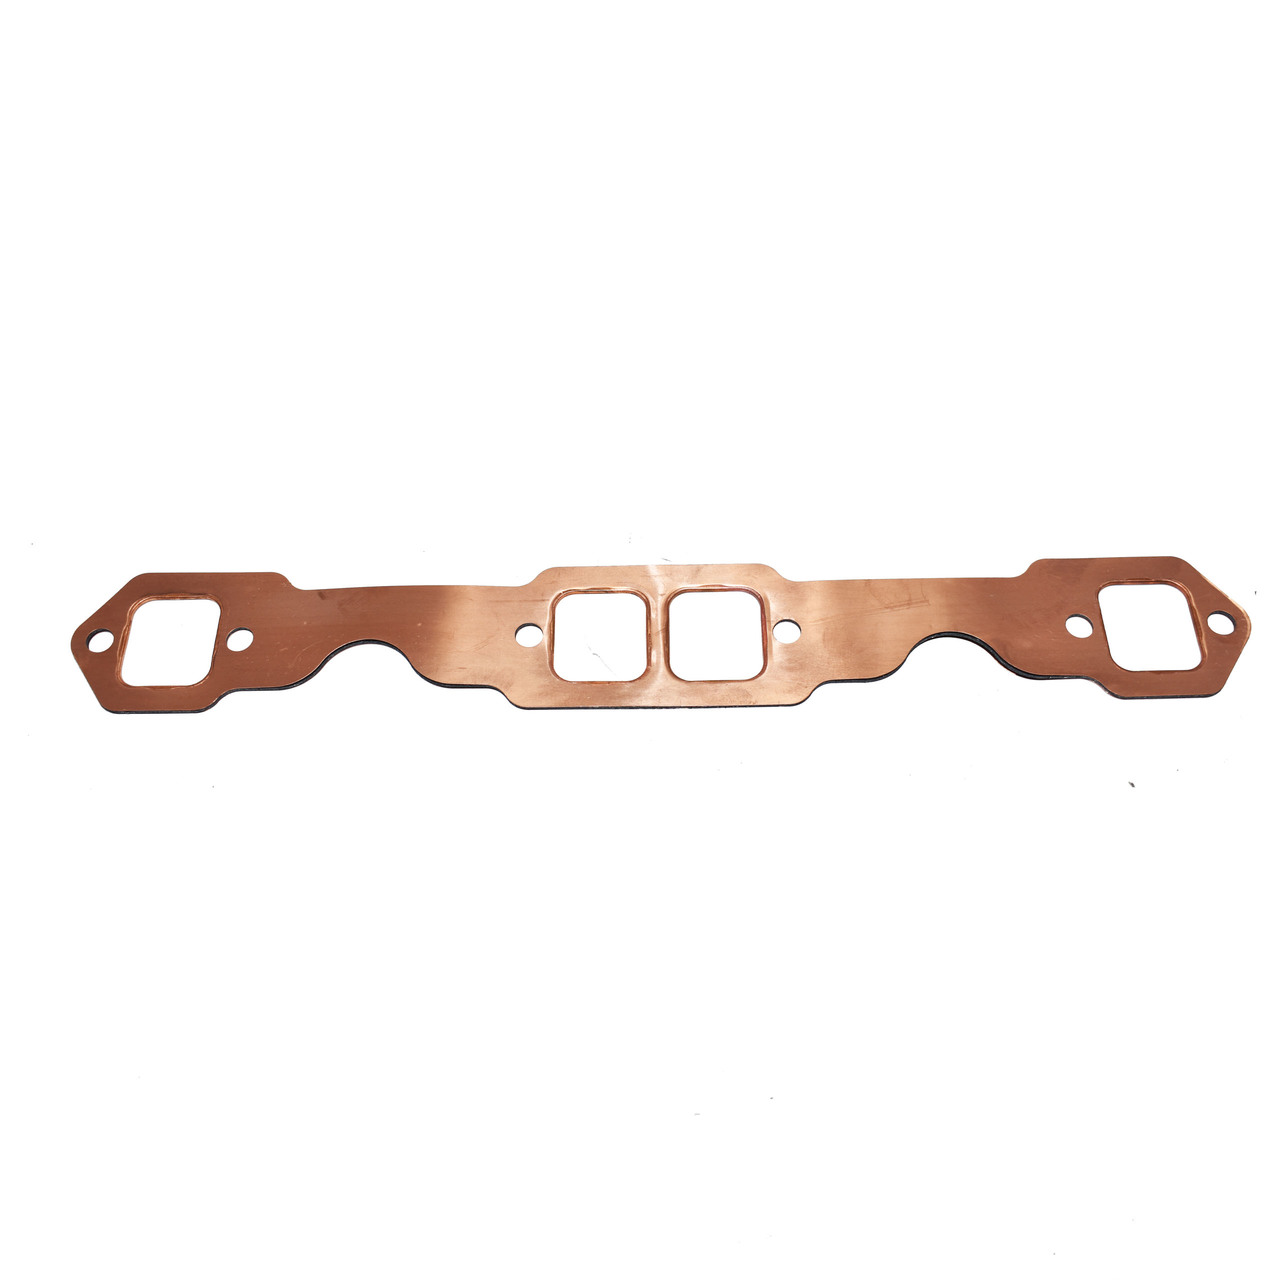 A-Team Performance SBC Rectangle Port Copper Header Exhaust Gaskets Reusable Chevy 305 327 350 383